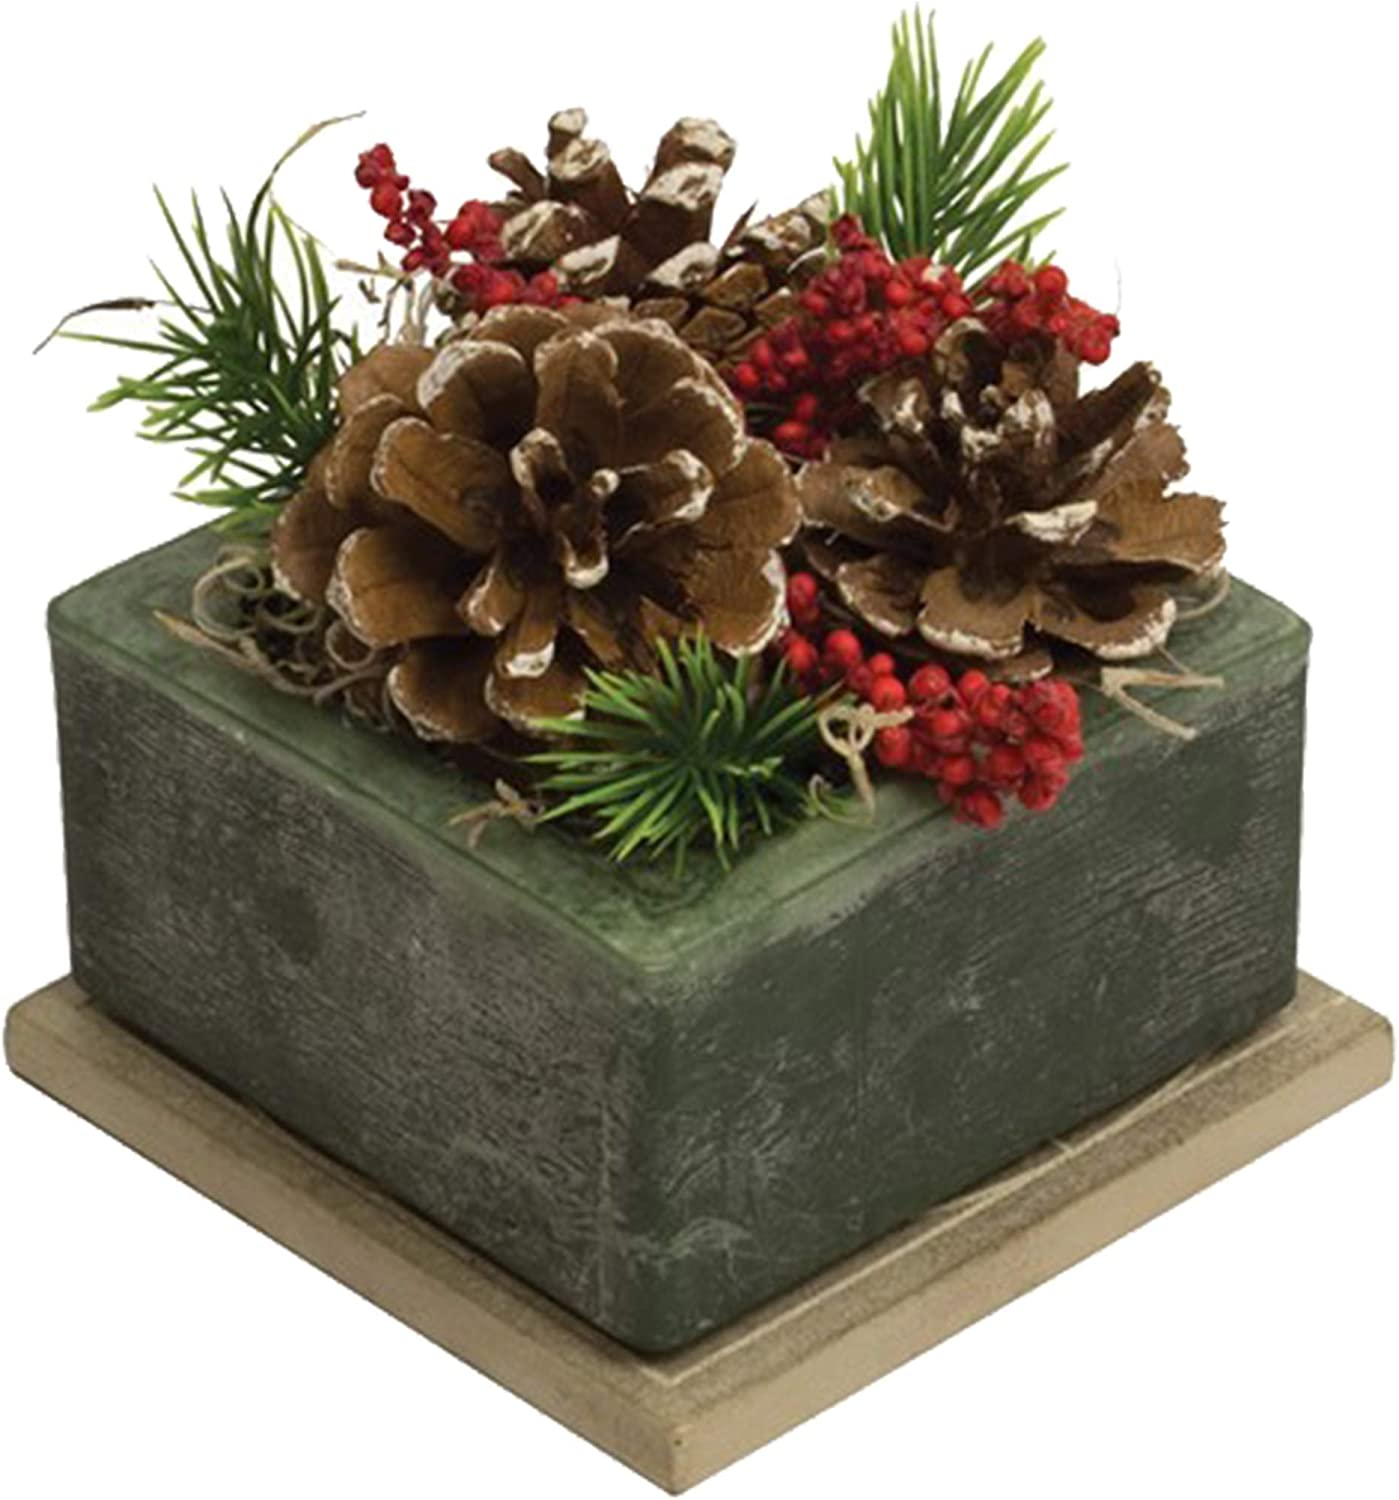 Habersham Candles Wax Pottery Geo Scented Succulent Cube Bowl, Frosted Pine Cone